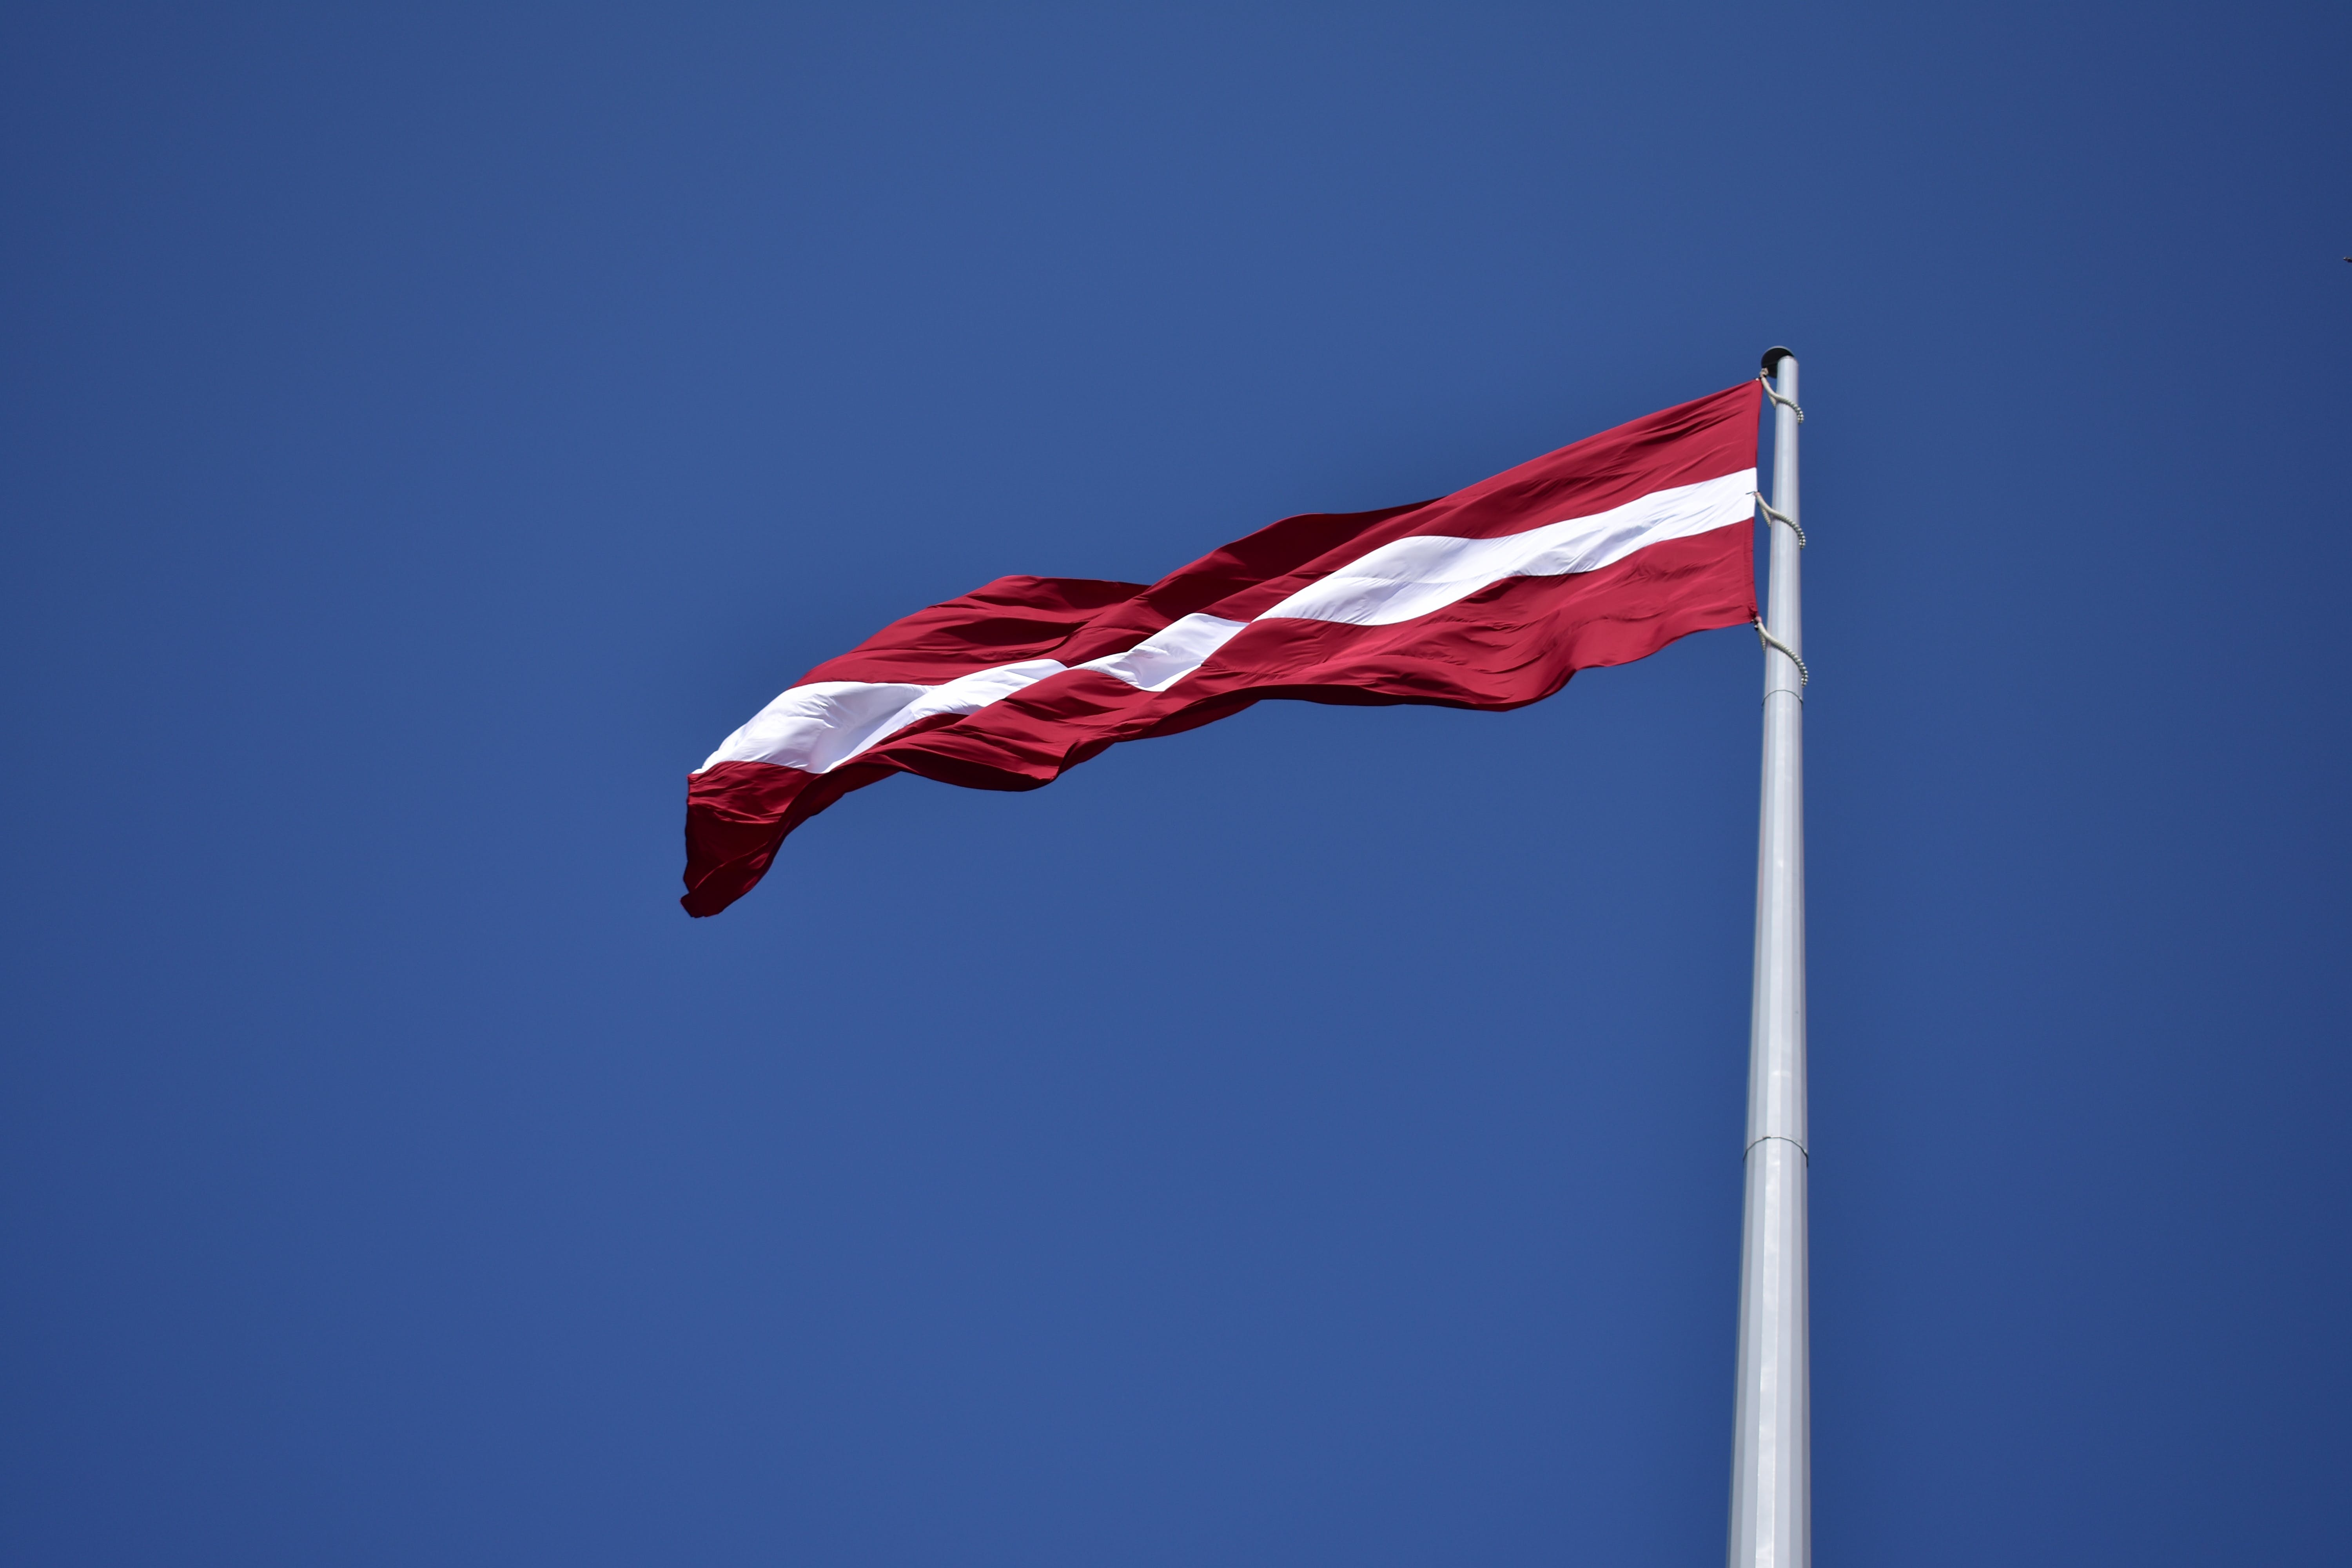 Red and White State Flag Waving Under Blue Sky at Daytime